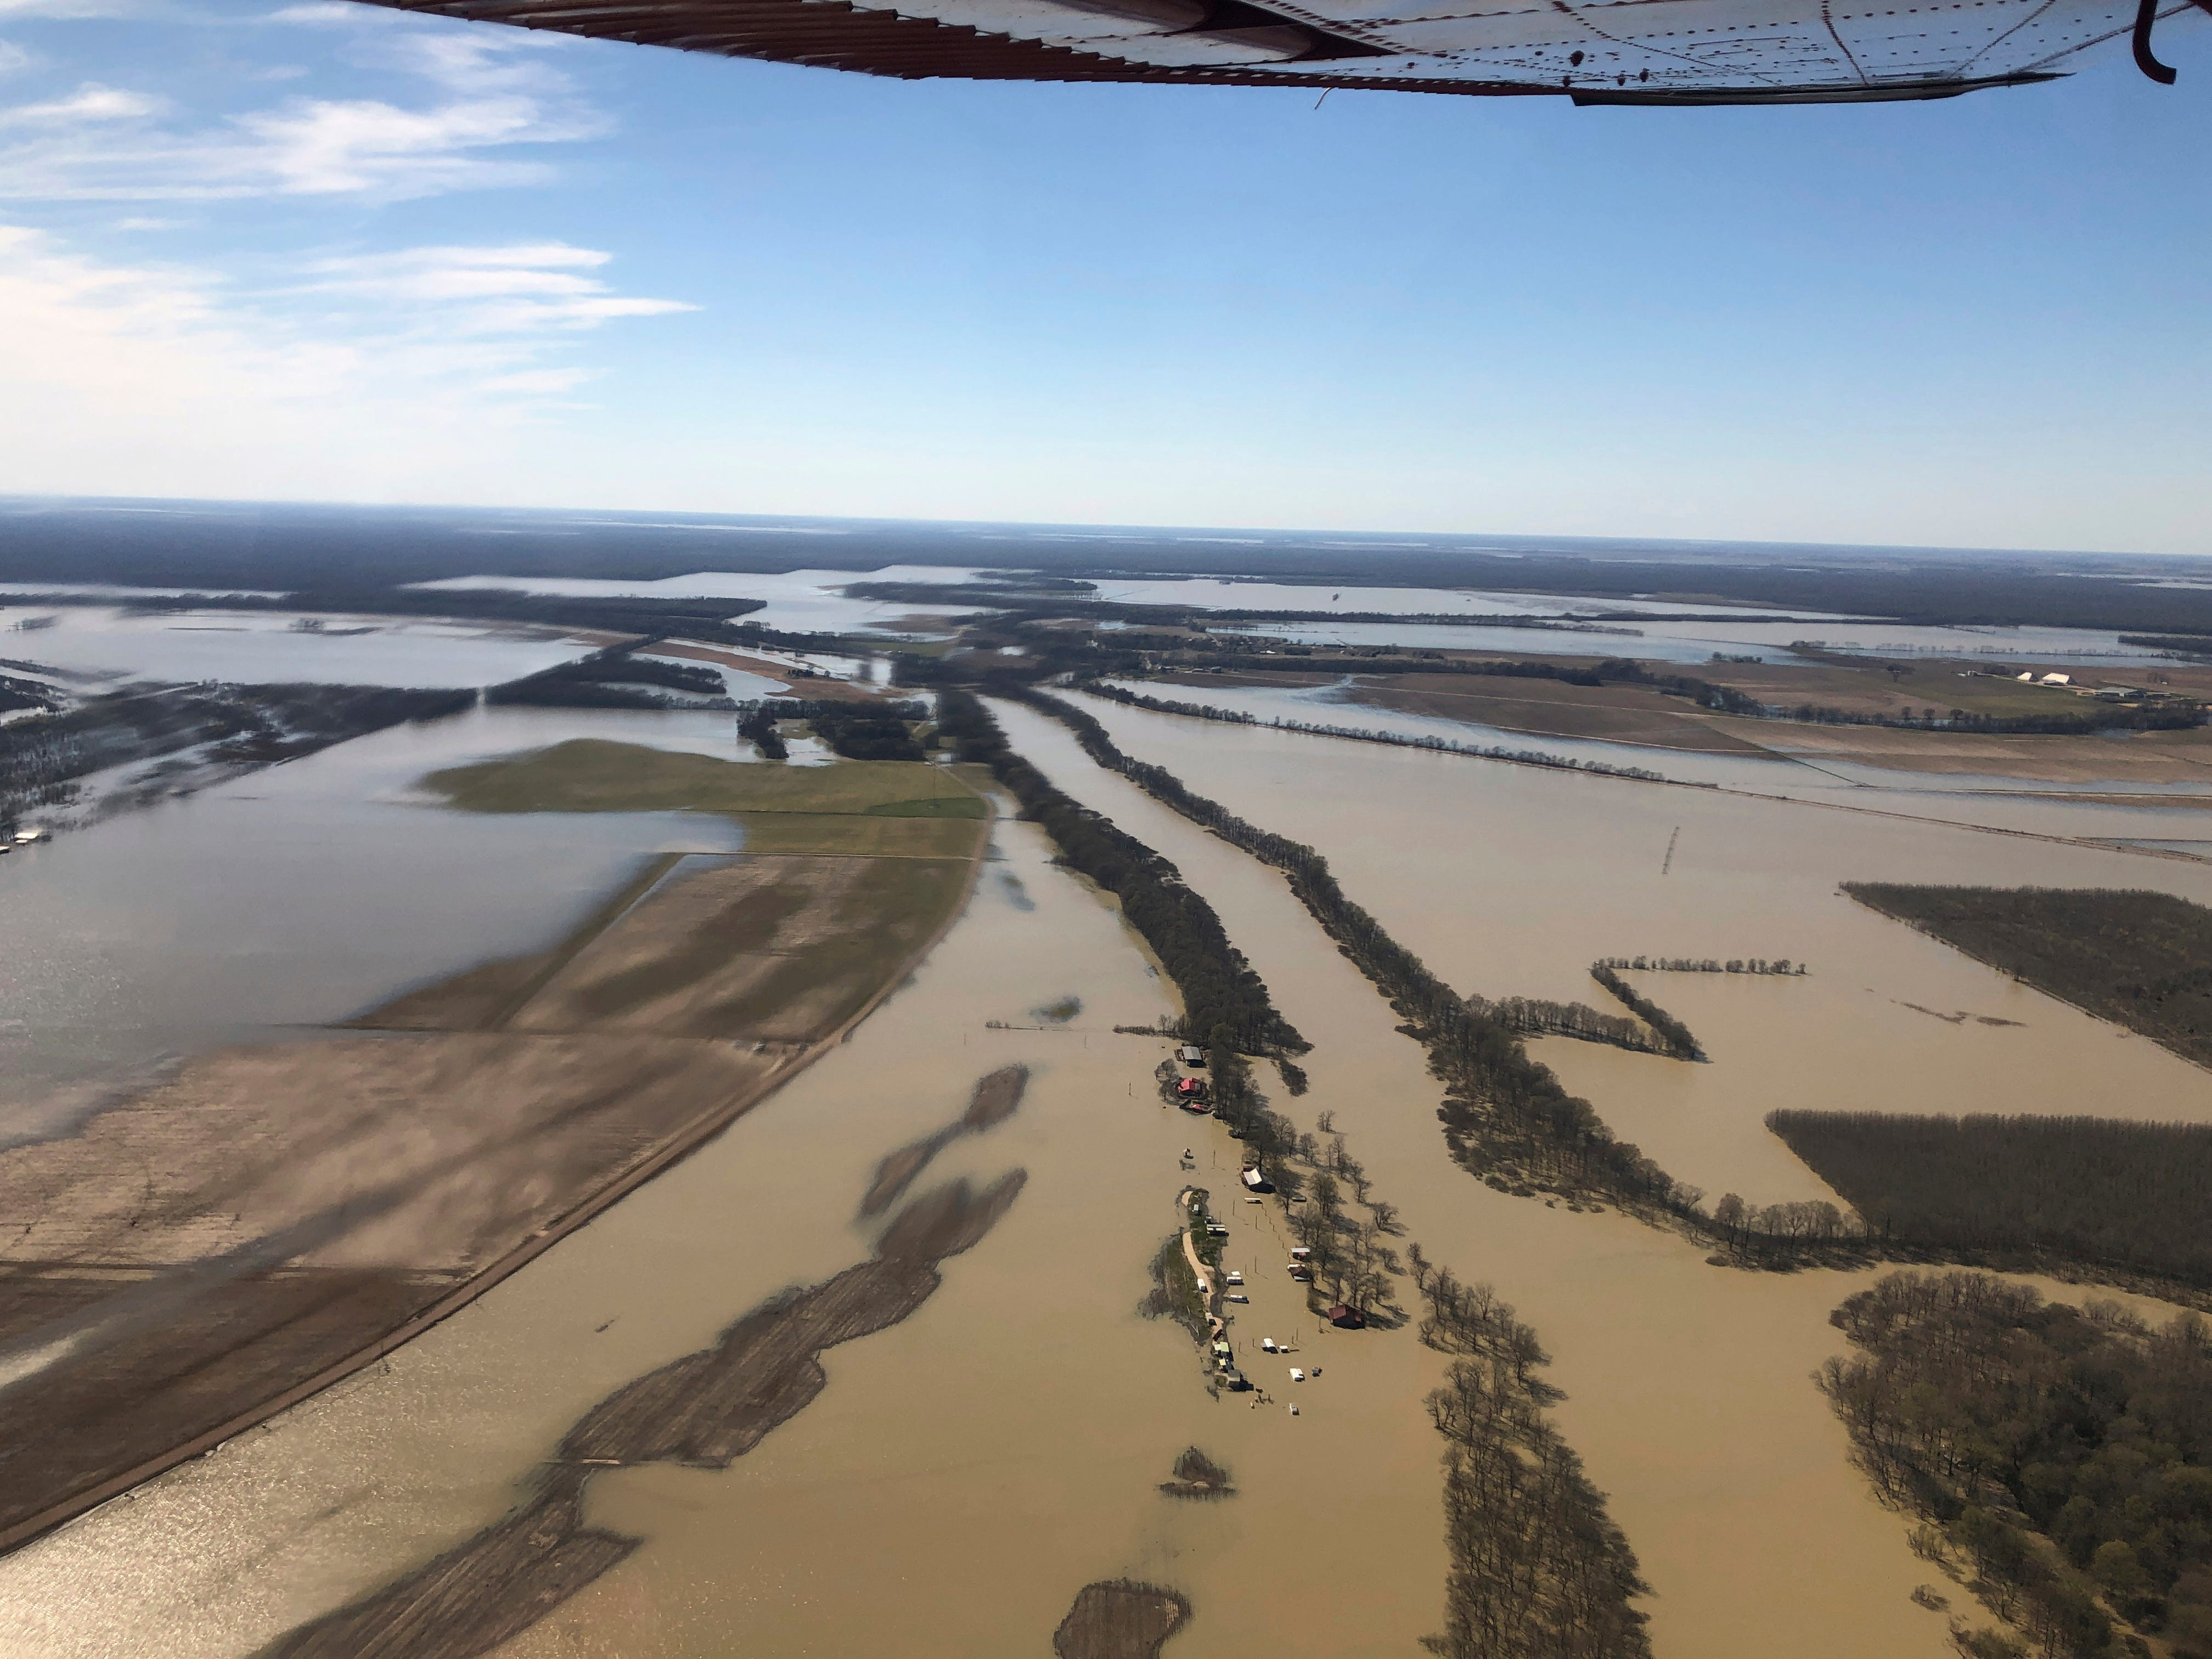 Backwater flooding covers stretches of farm lands near Yazoo City, Miss., Sunday, March 17, 2019, as seen in this aerial photograph. Various communities in the Mississippi Delta are combatting both Mississippi River flooding and backwater flooding that are affecting homes, businesses and farm lands.